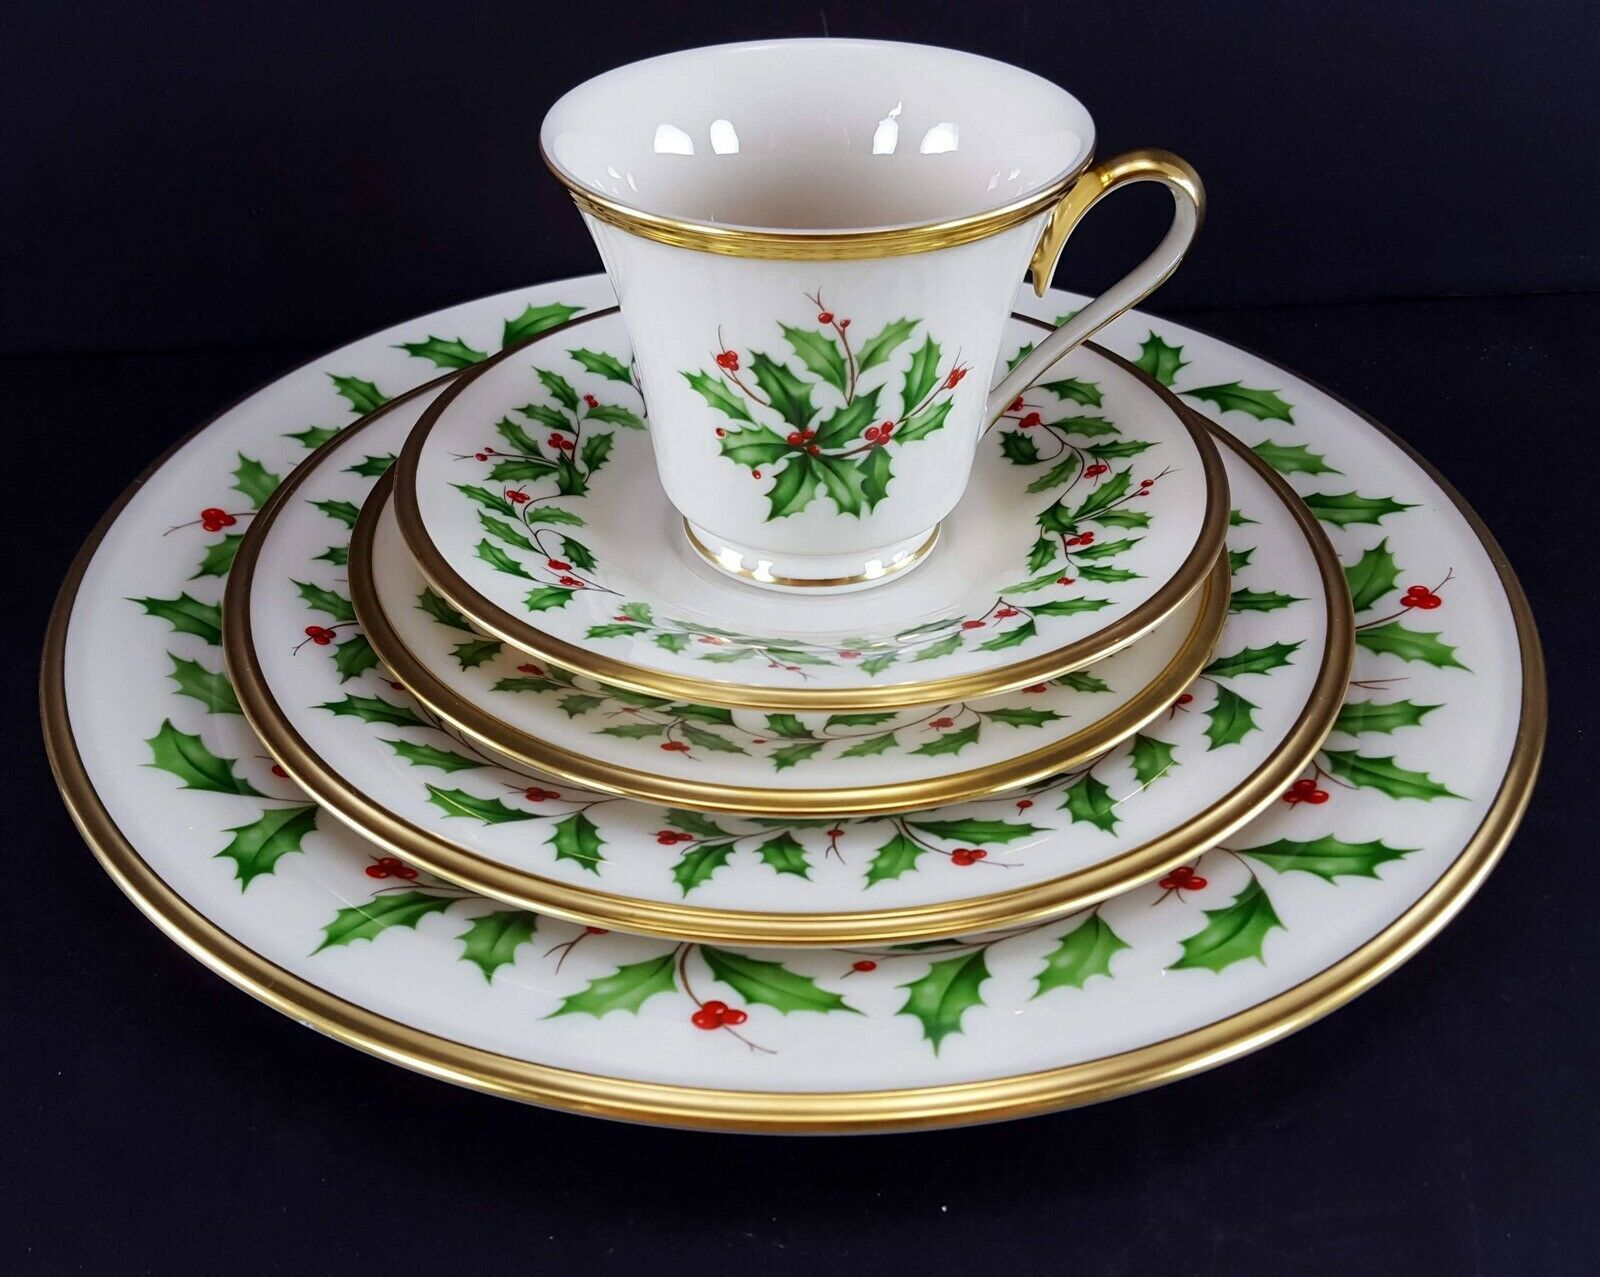 LENOX China Holiday Dimension 5 Piece Place Setting Dinnerware USA image 11